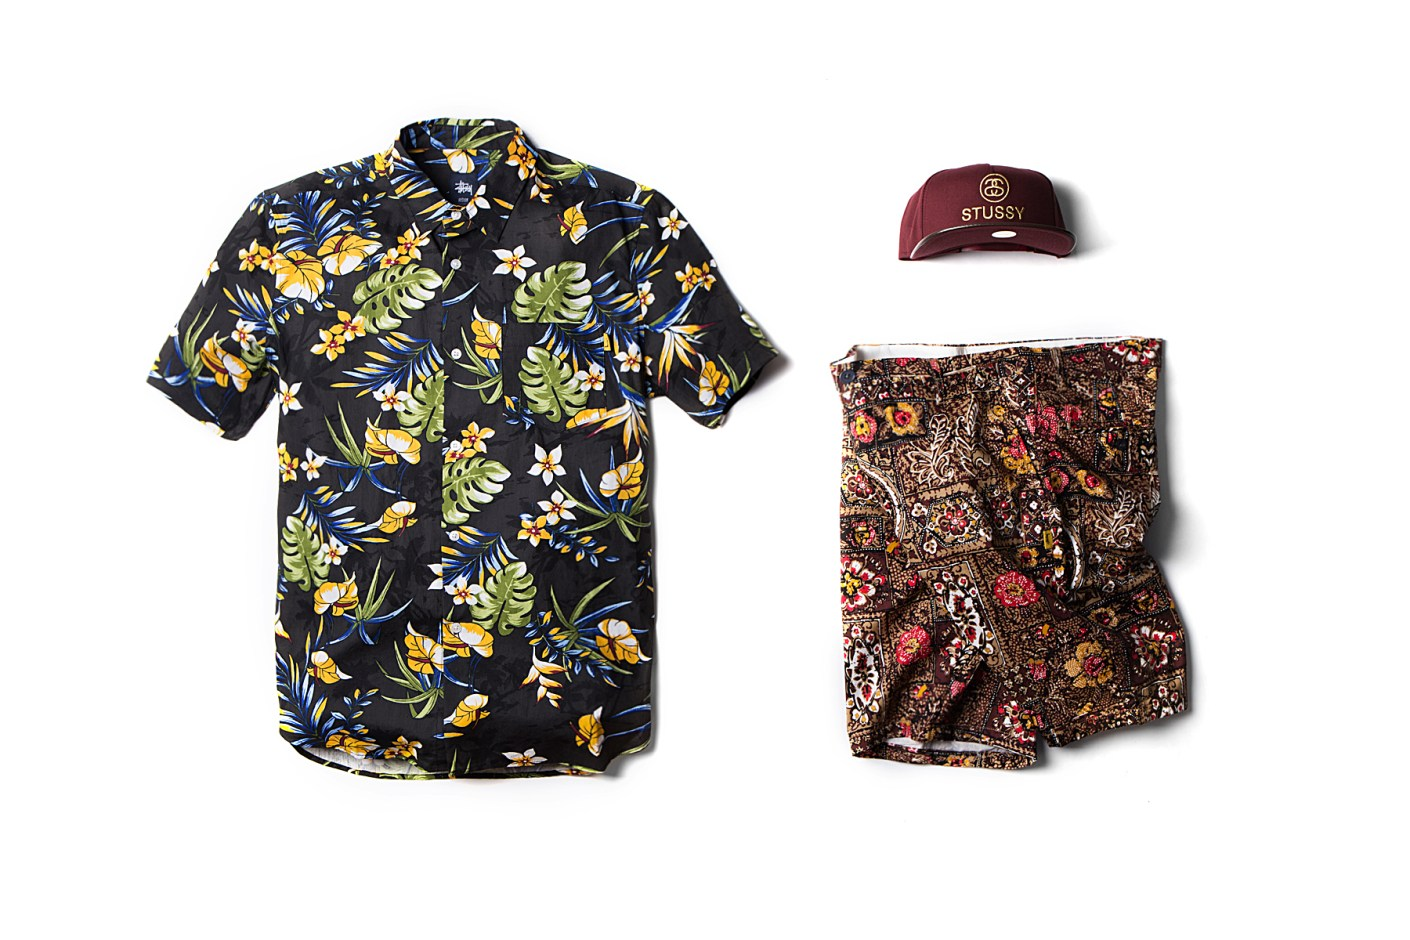 Image of Stussy 2014 Spring/Summer New Arrivals